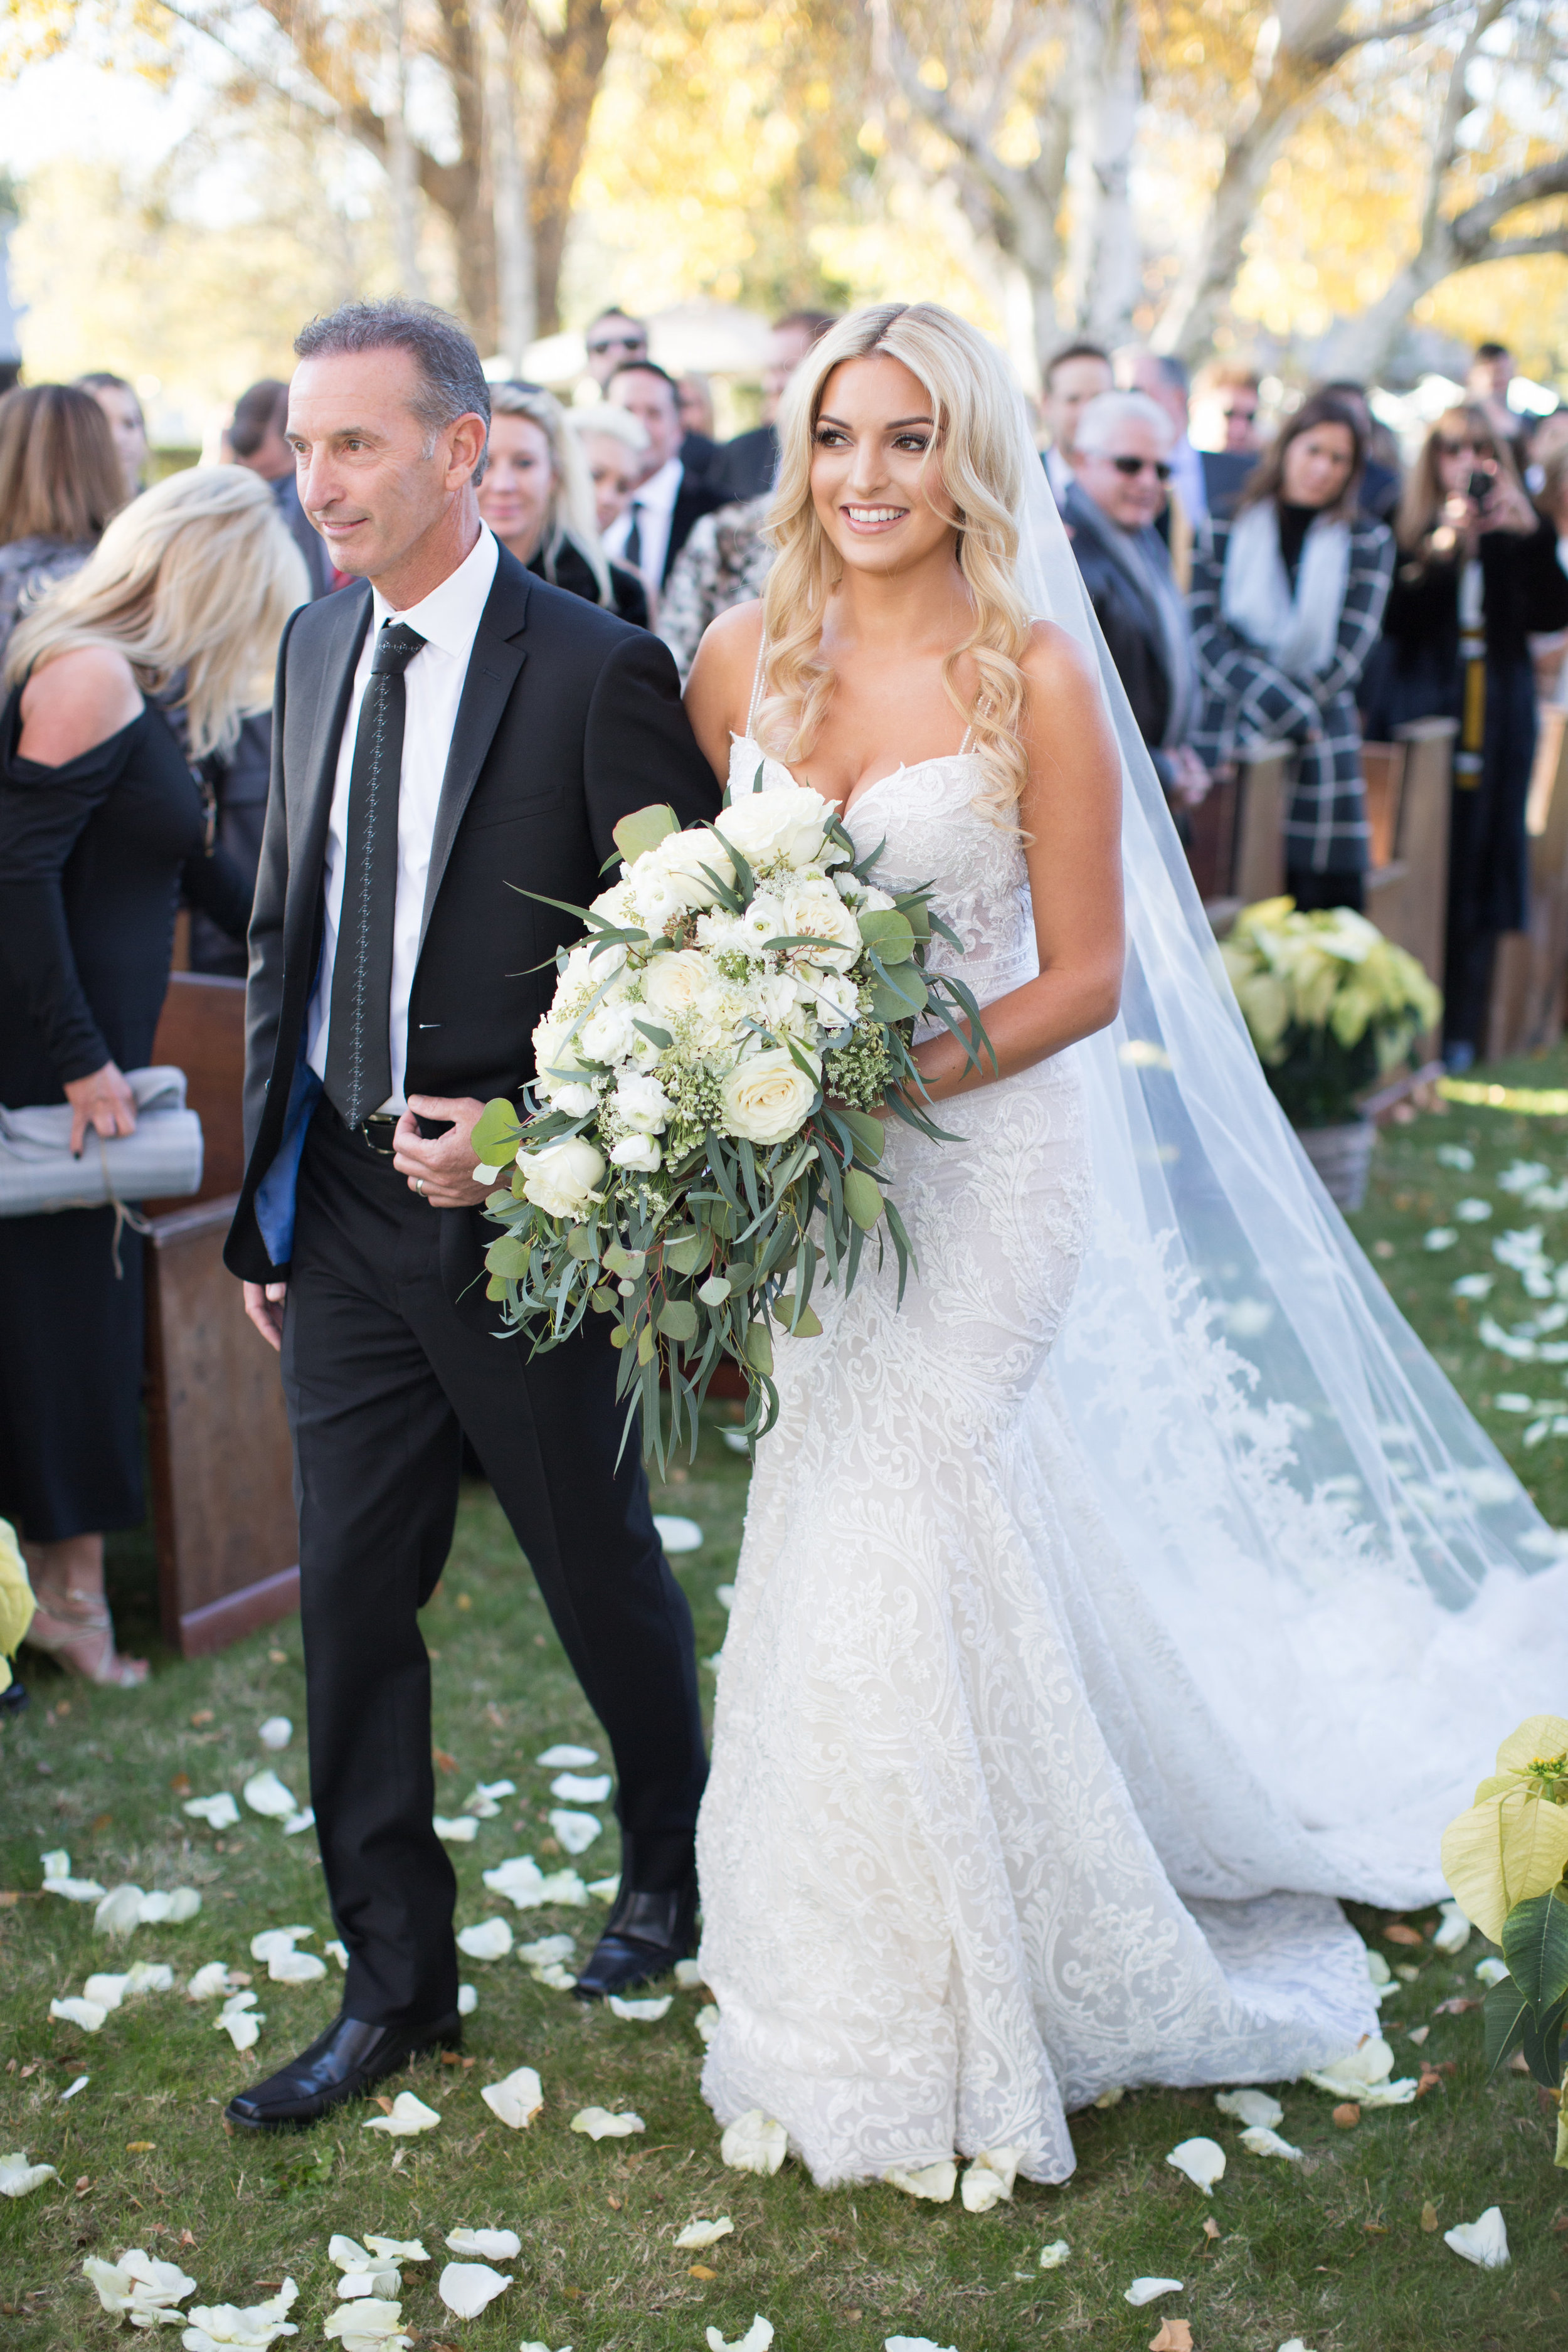 www.santabarbarawedding.com   Whispering Rose Ranch   Ann Johnson Events   Anna J Photo   Bride and Father